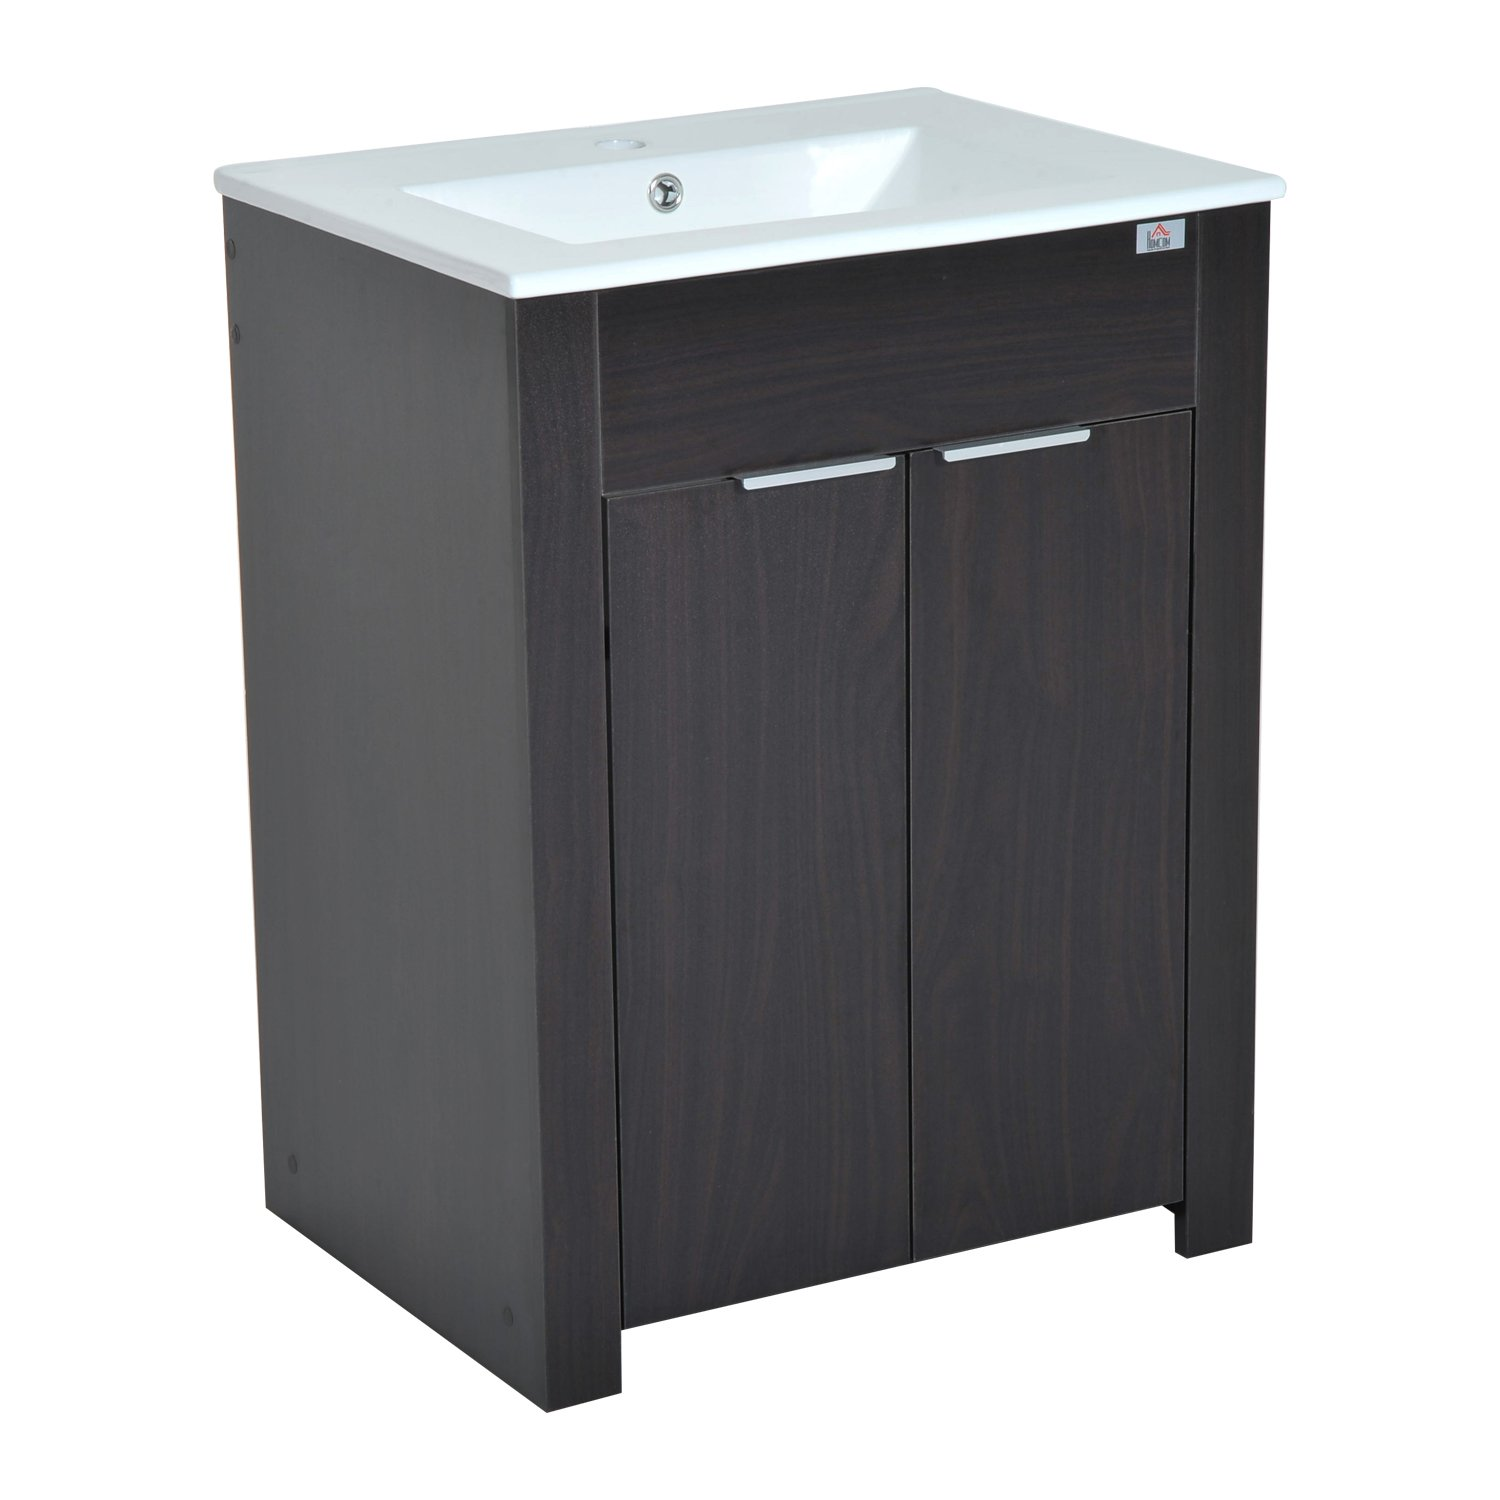 HomCom 24'' Single Sink Bathroom Vanity Cabinet with Ceramic Sink Top - Dark Coffee by HOMCOM